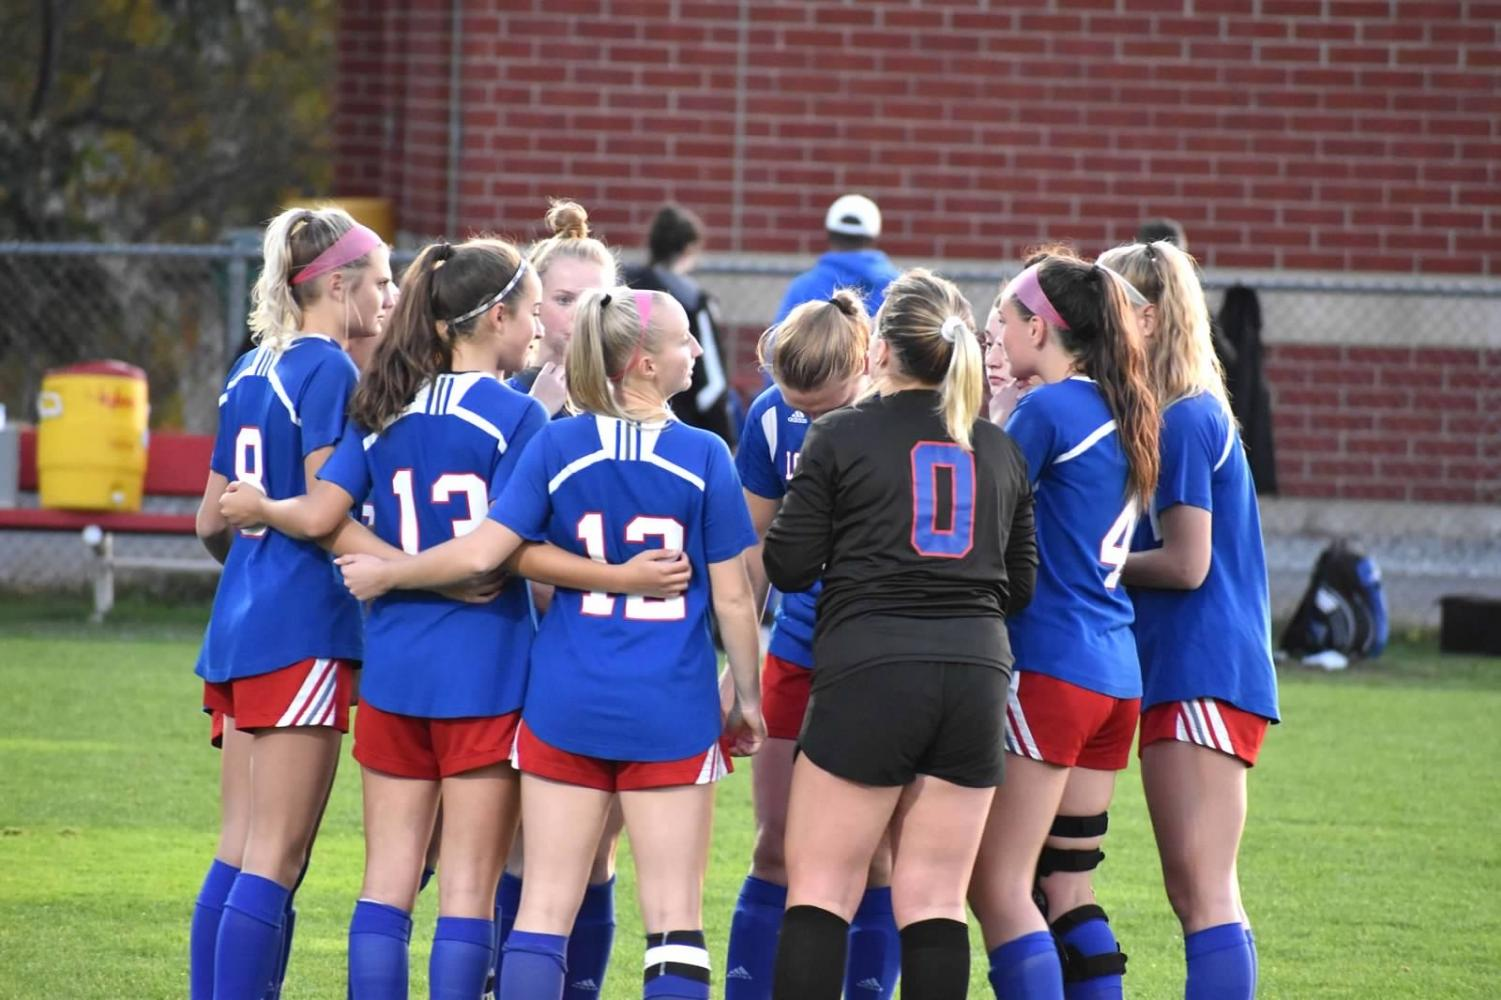 The girls' varsity soccer team gather together to strategize their next play during the recent game against Exeter.